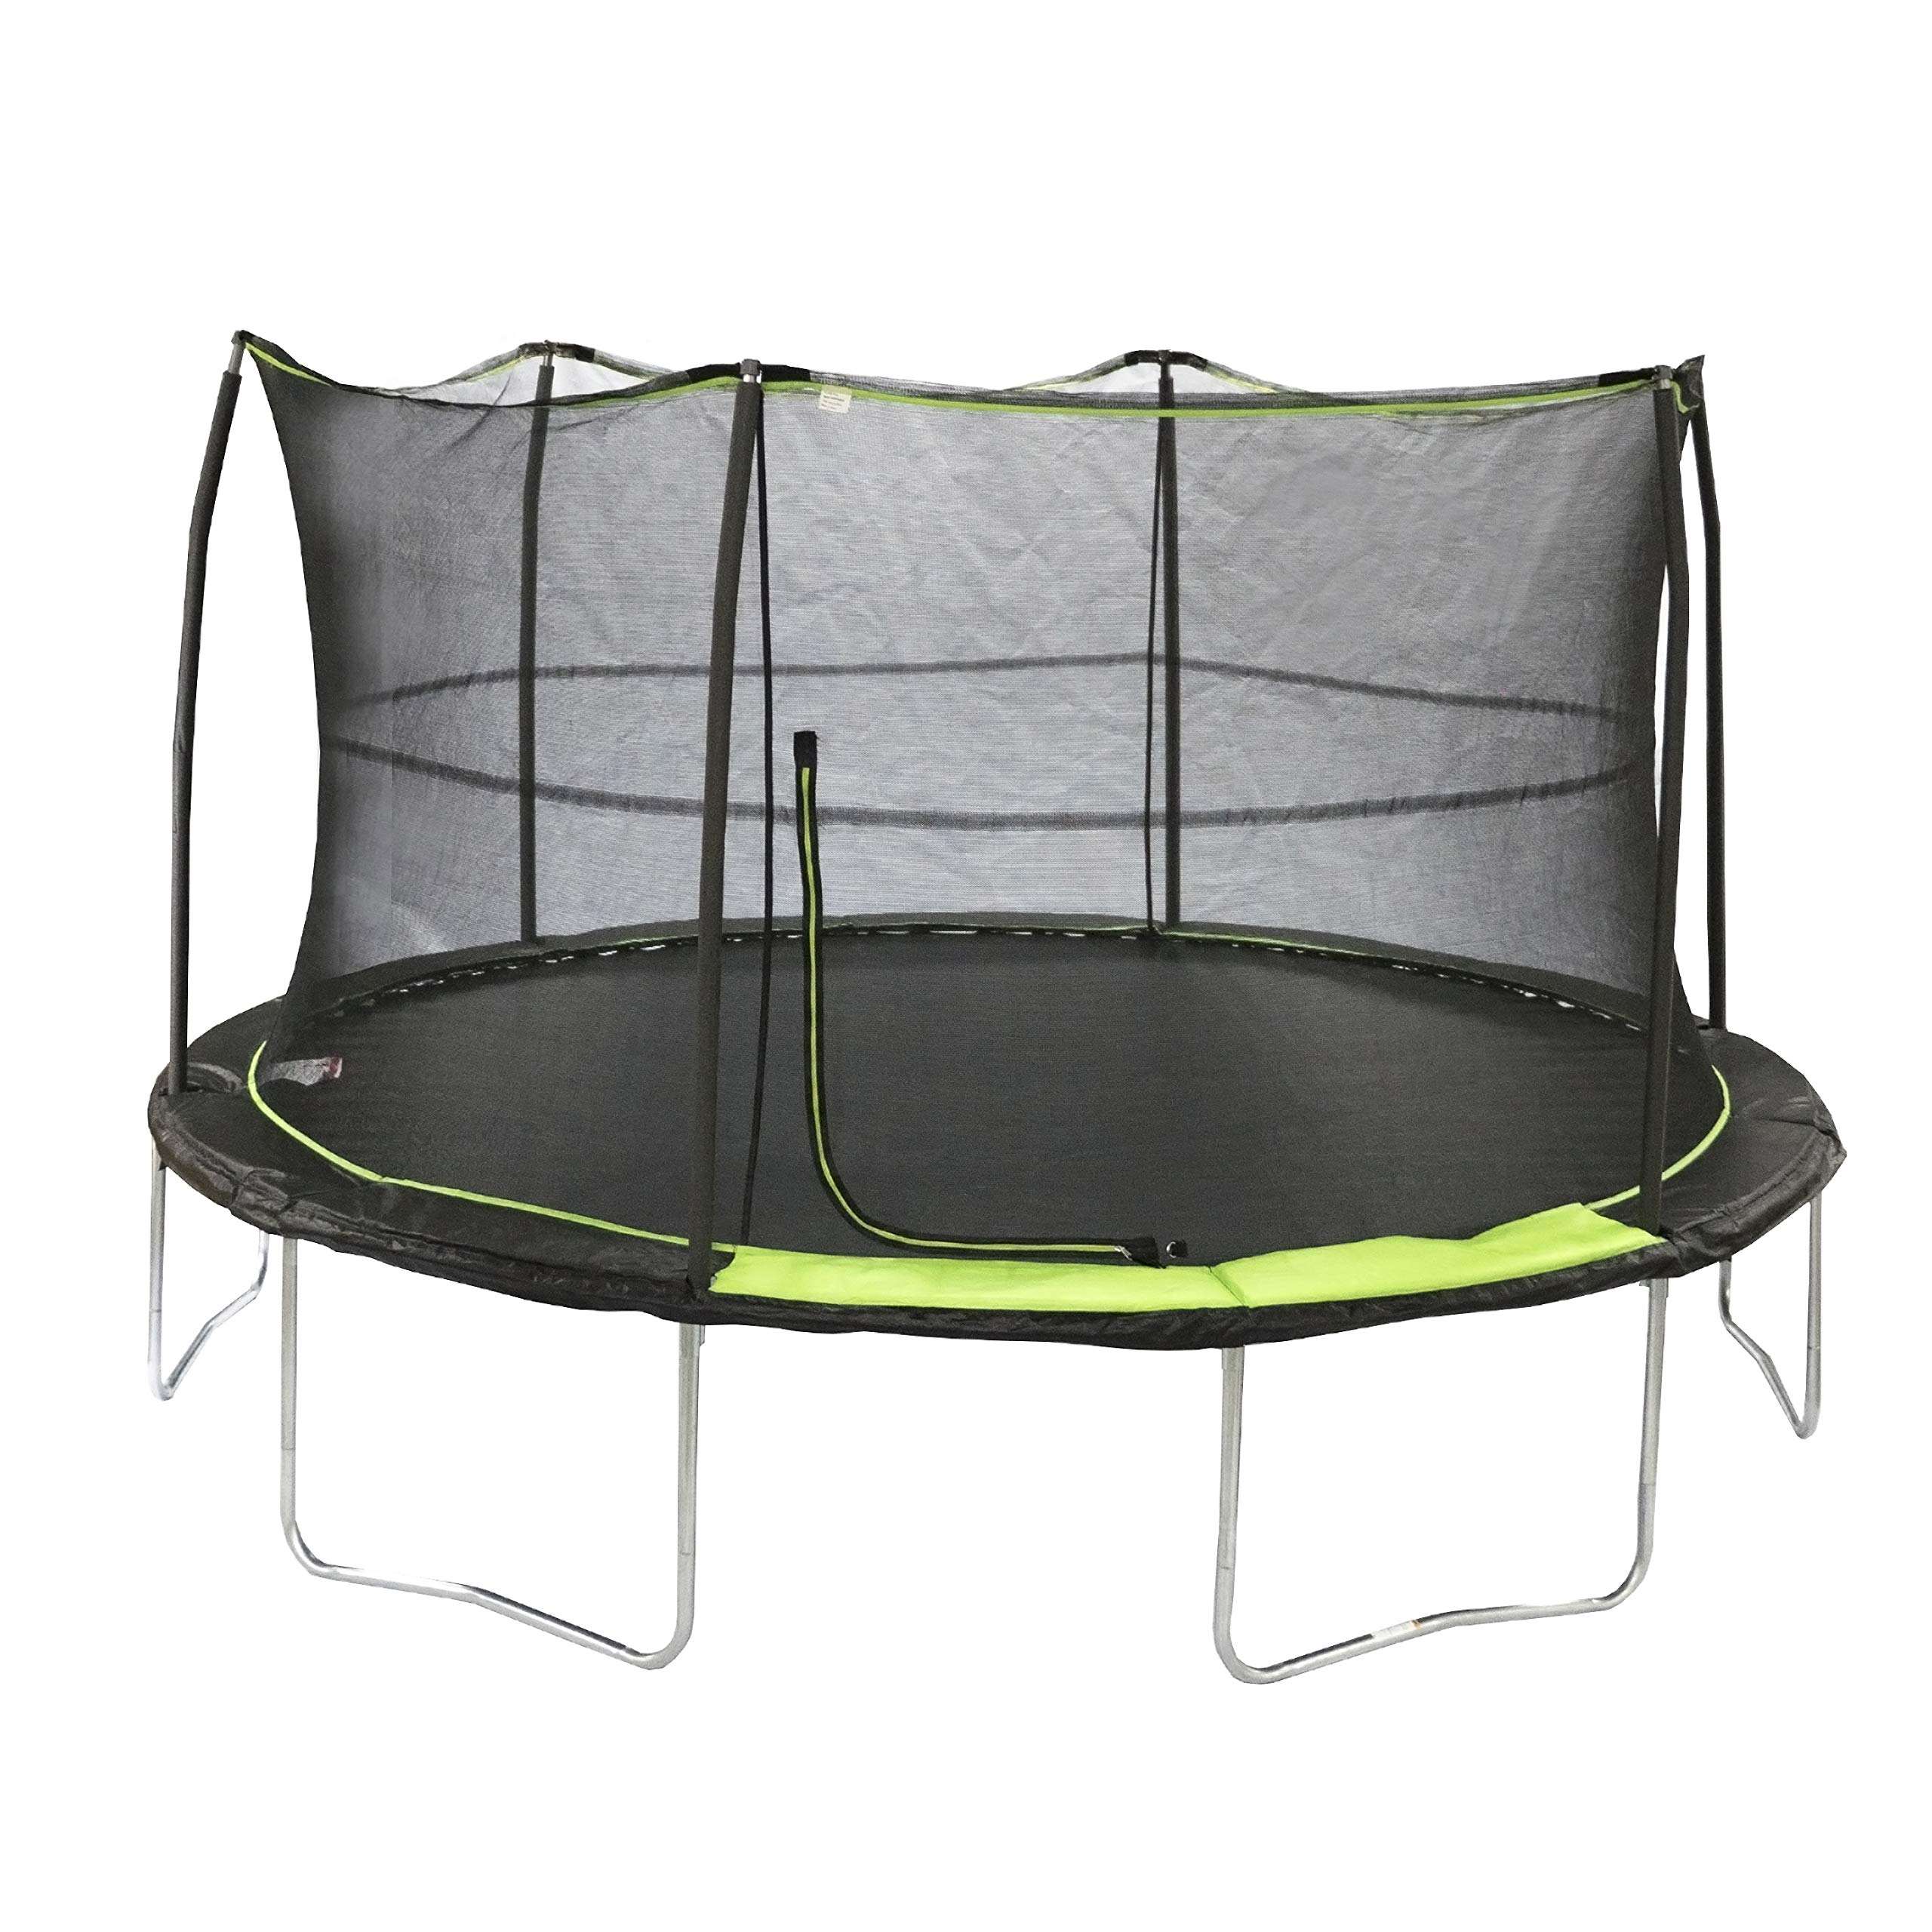 JumpKing 14' Trampoline with 6 Poles by JumpKing